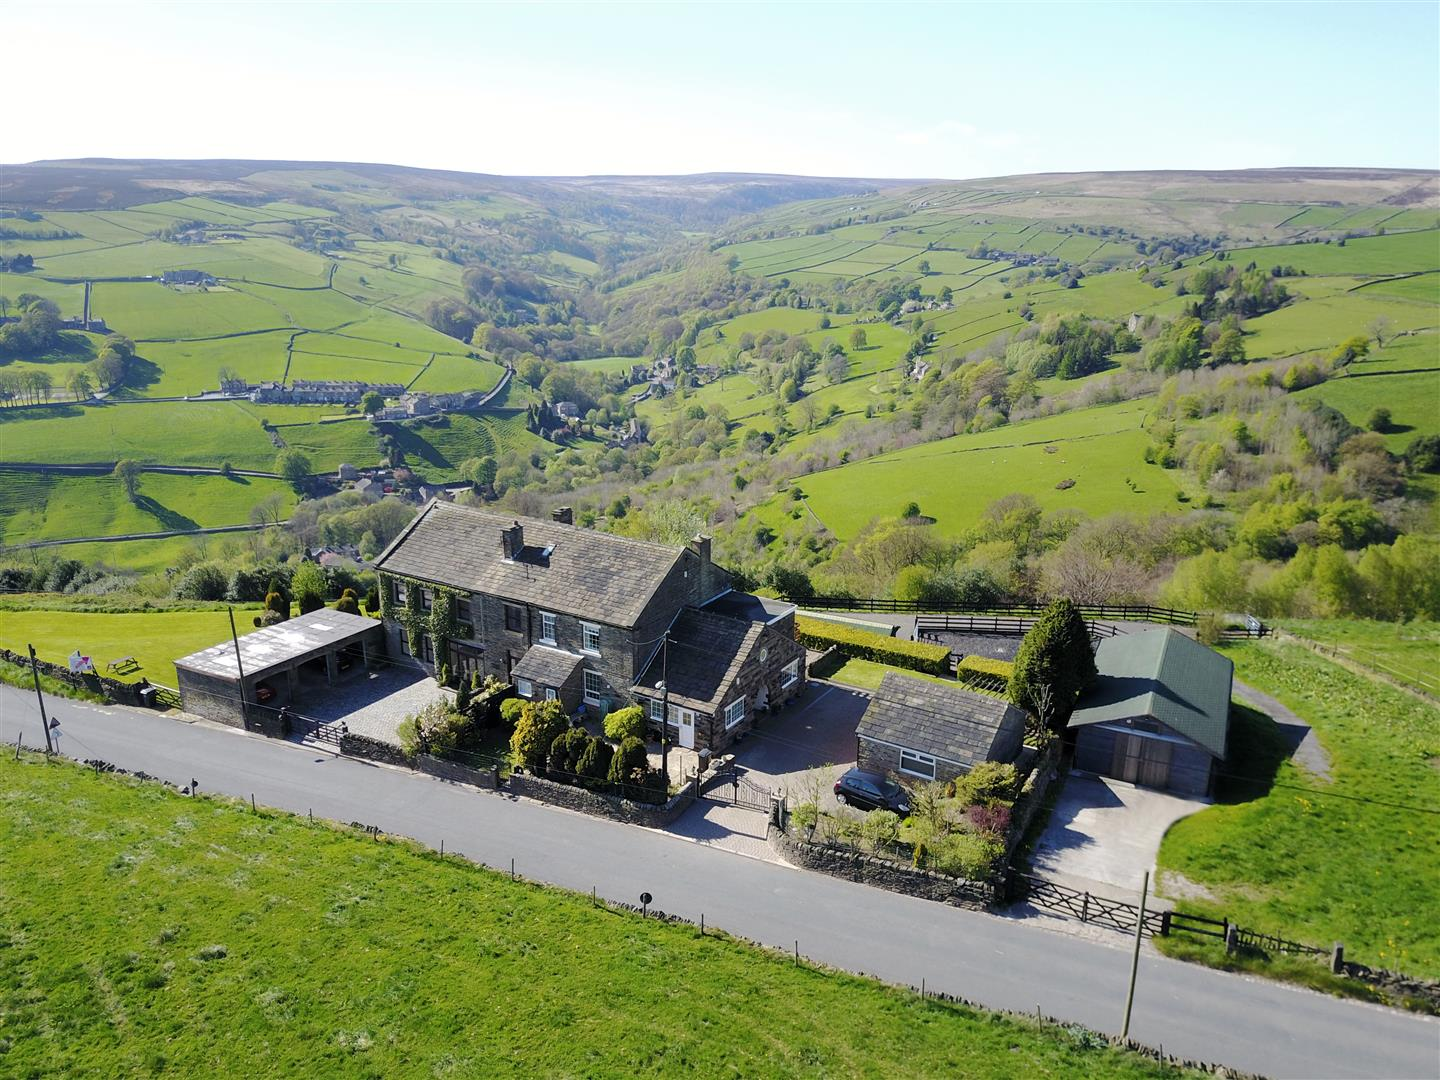 Breck Top Cottage, Stocks Lane, Luddenden Valley, HX2 7TA